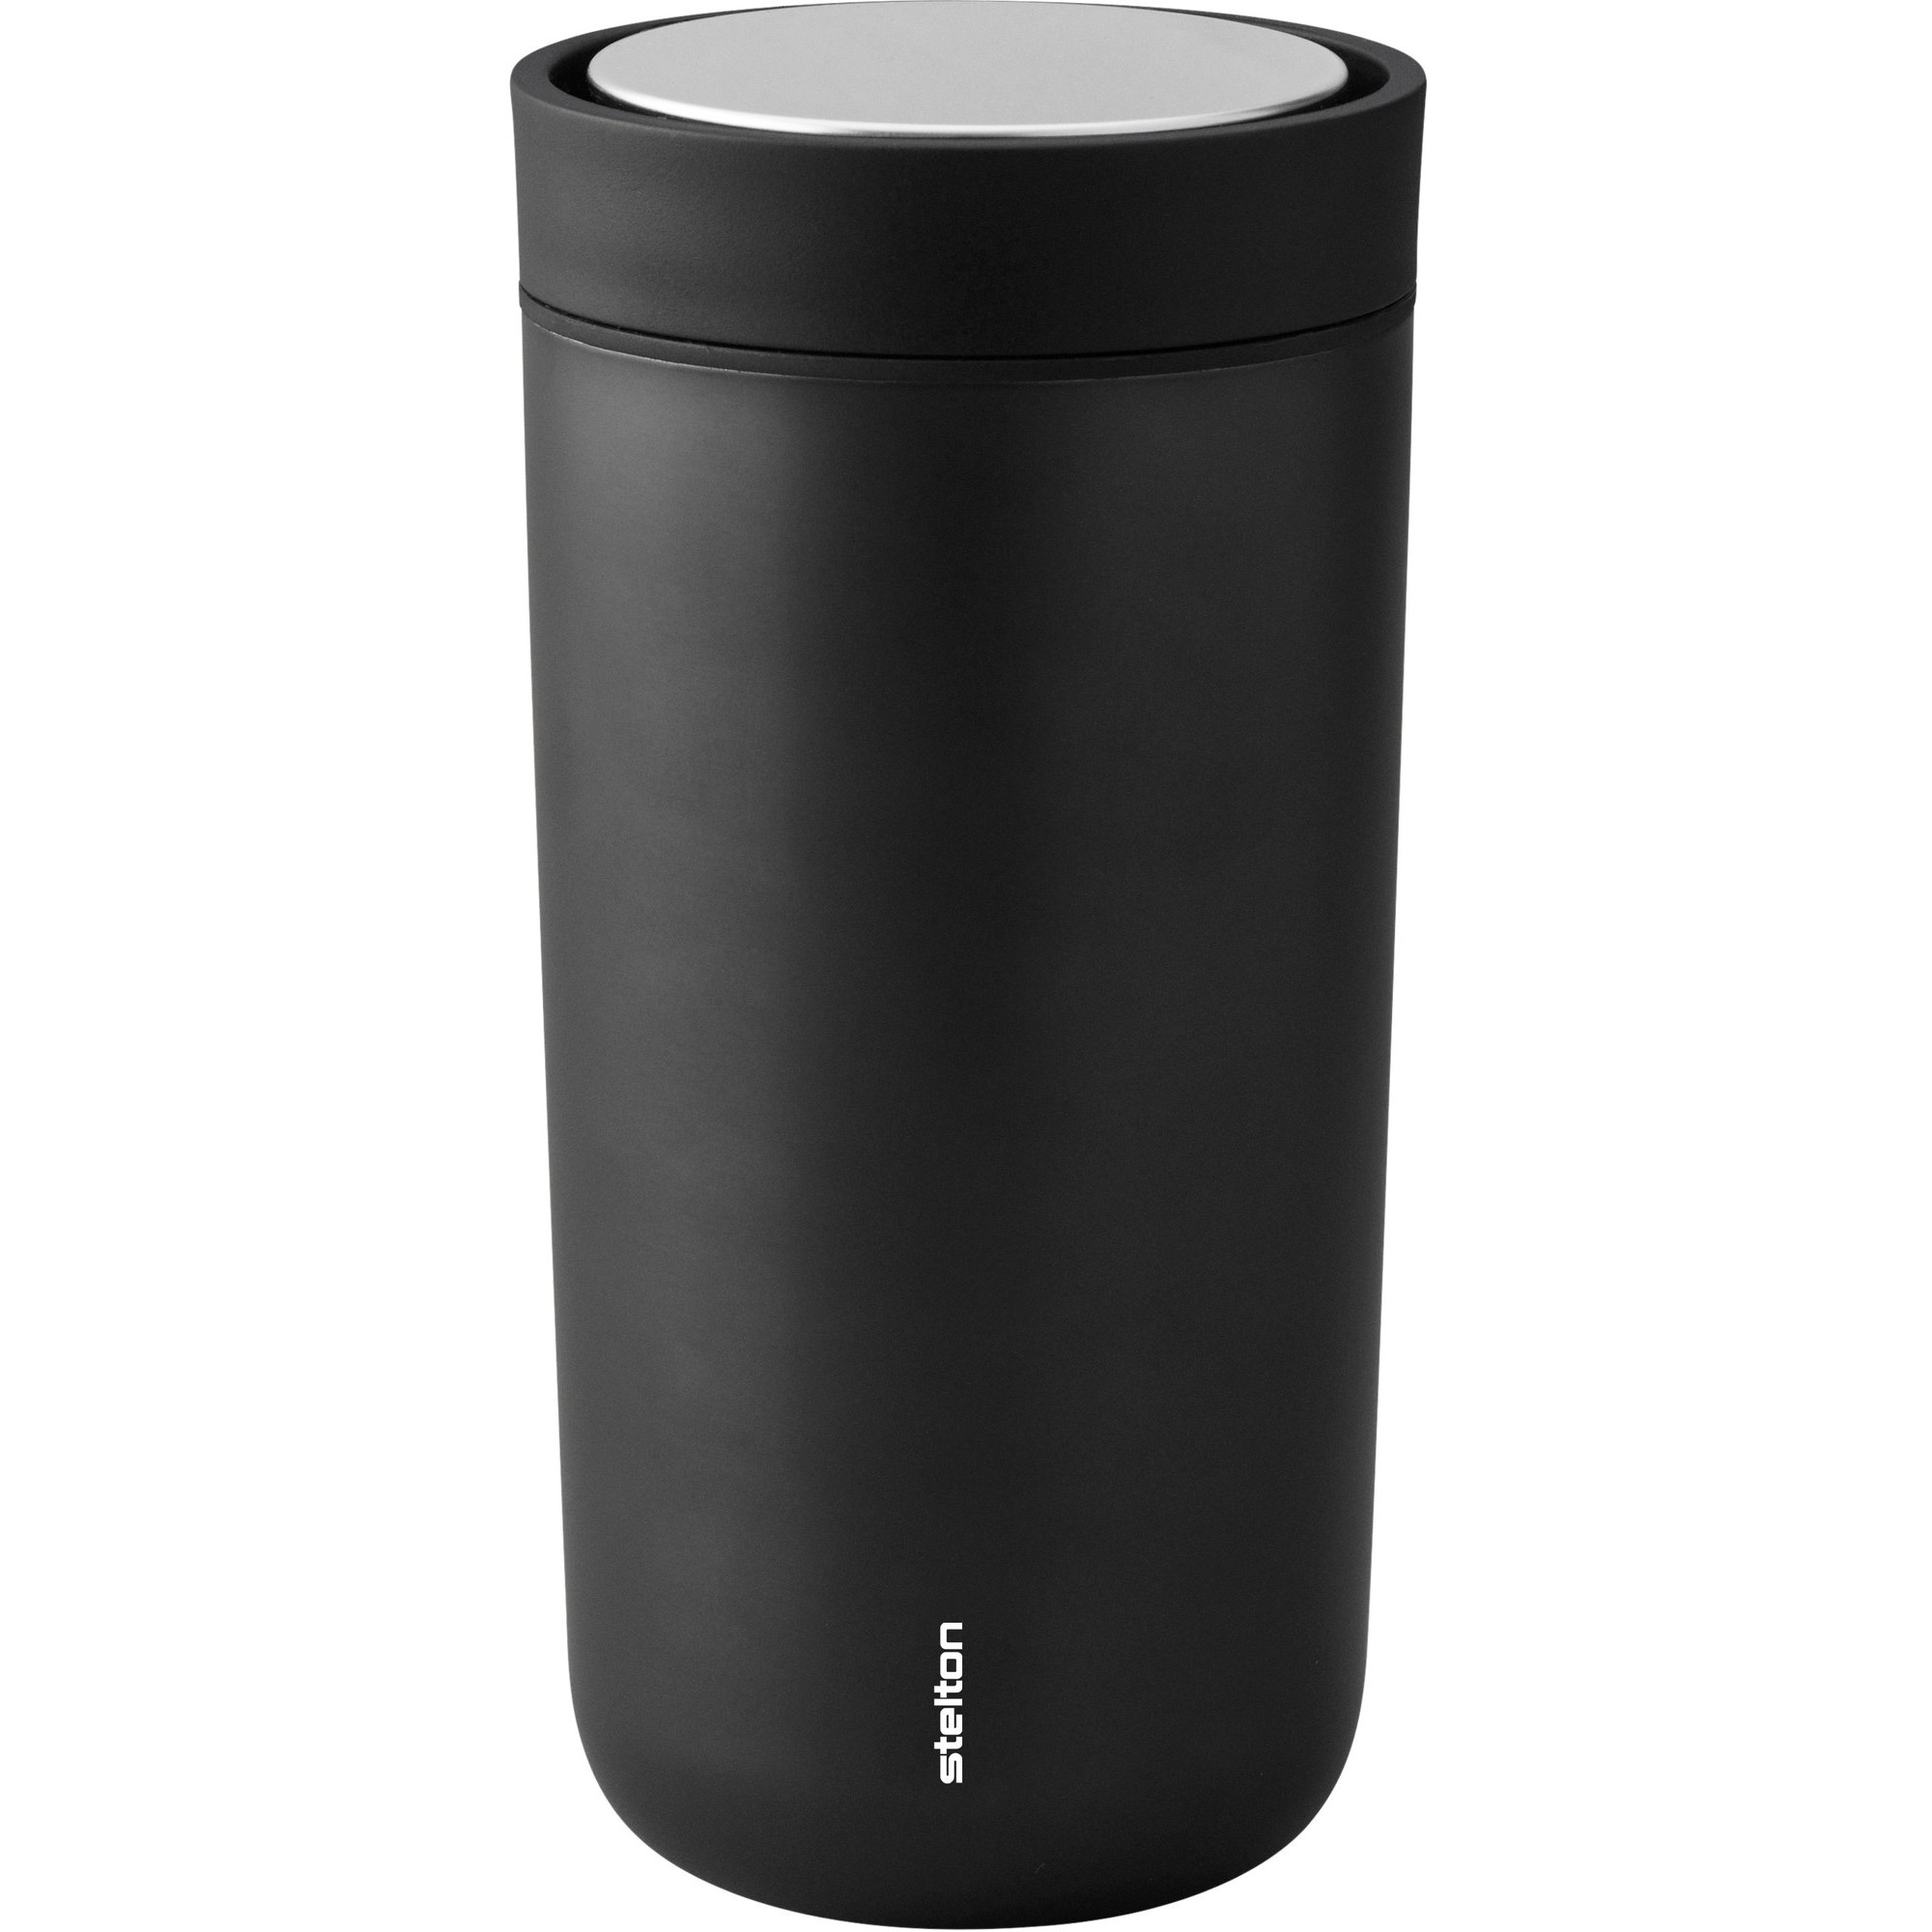 Stelton To Go Click d. steel 04 l. – black metallic